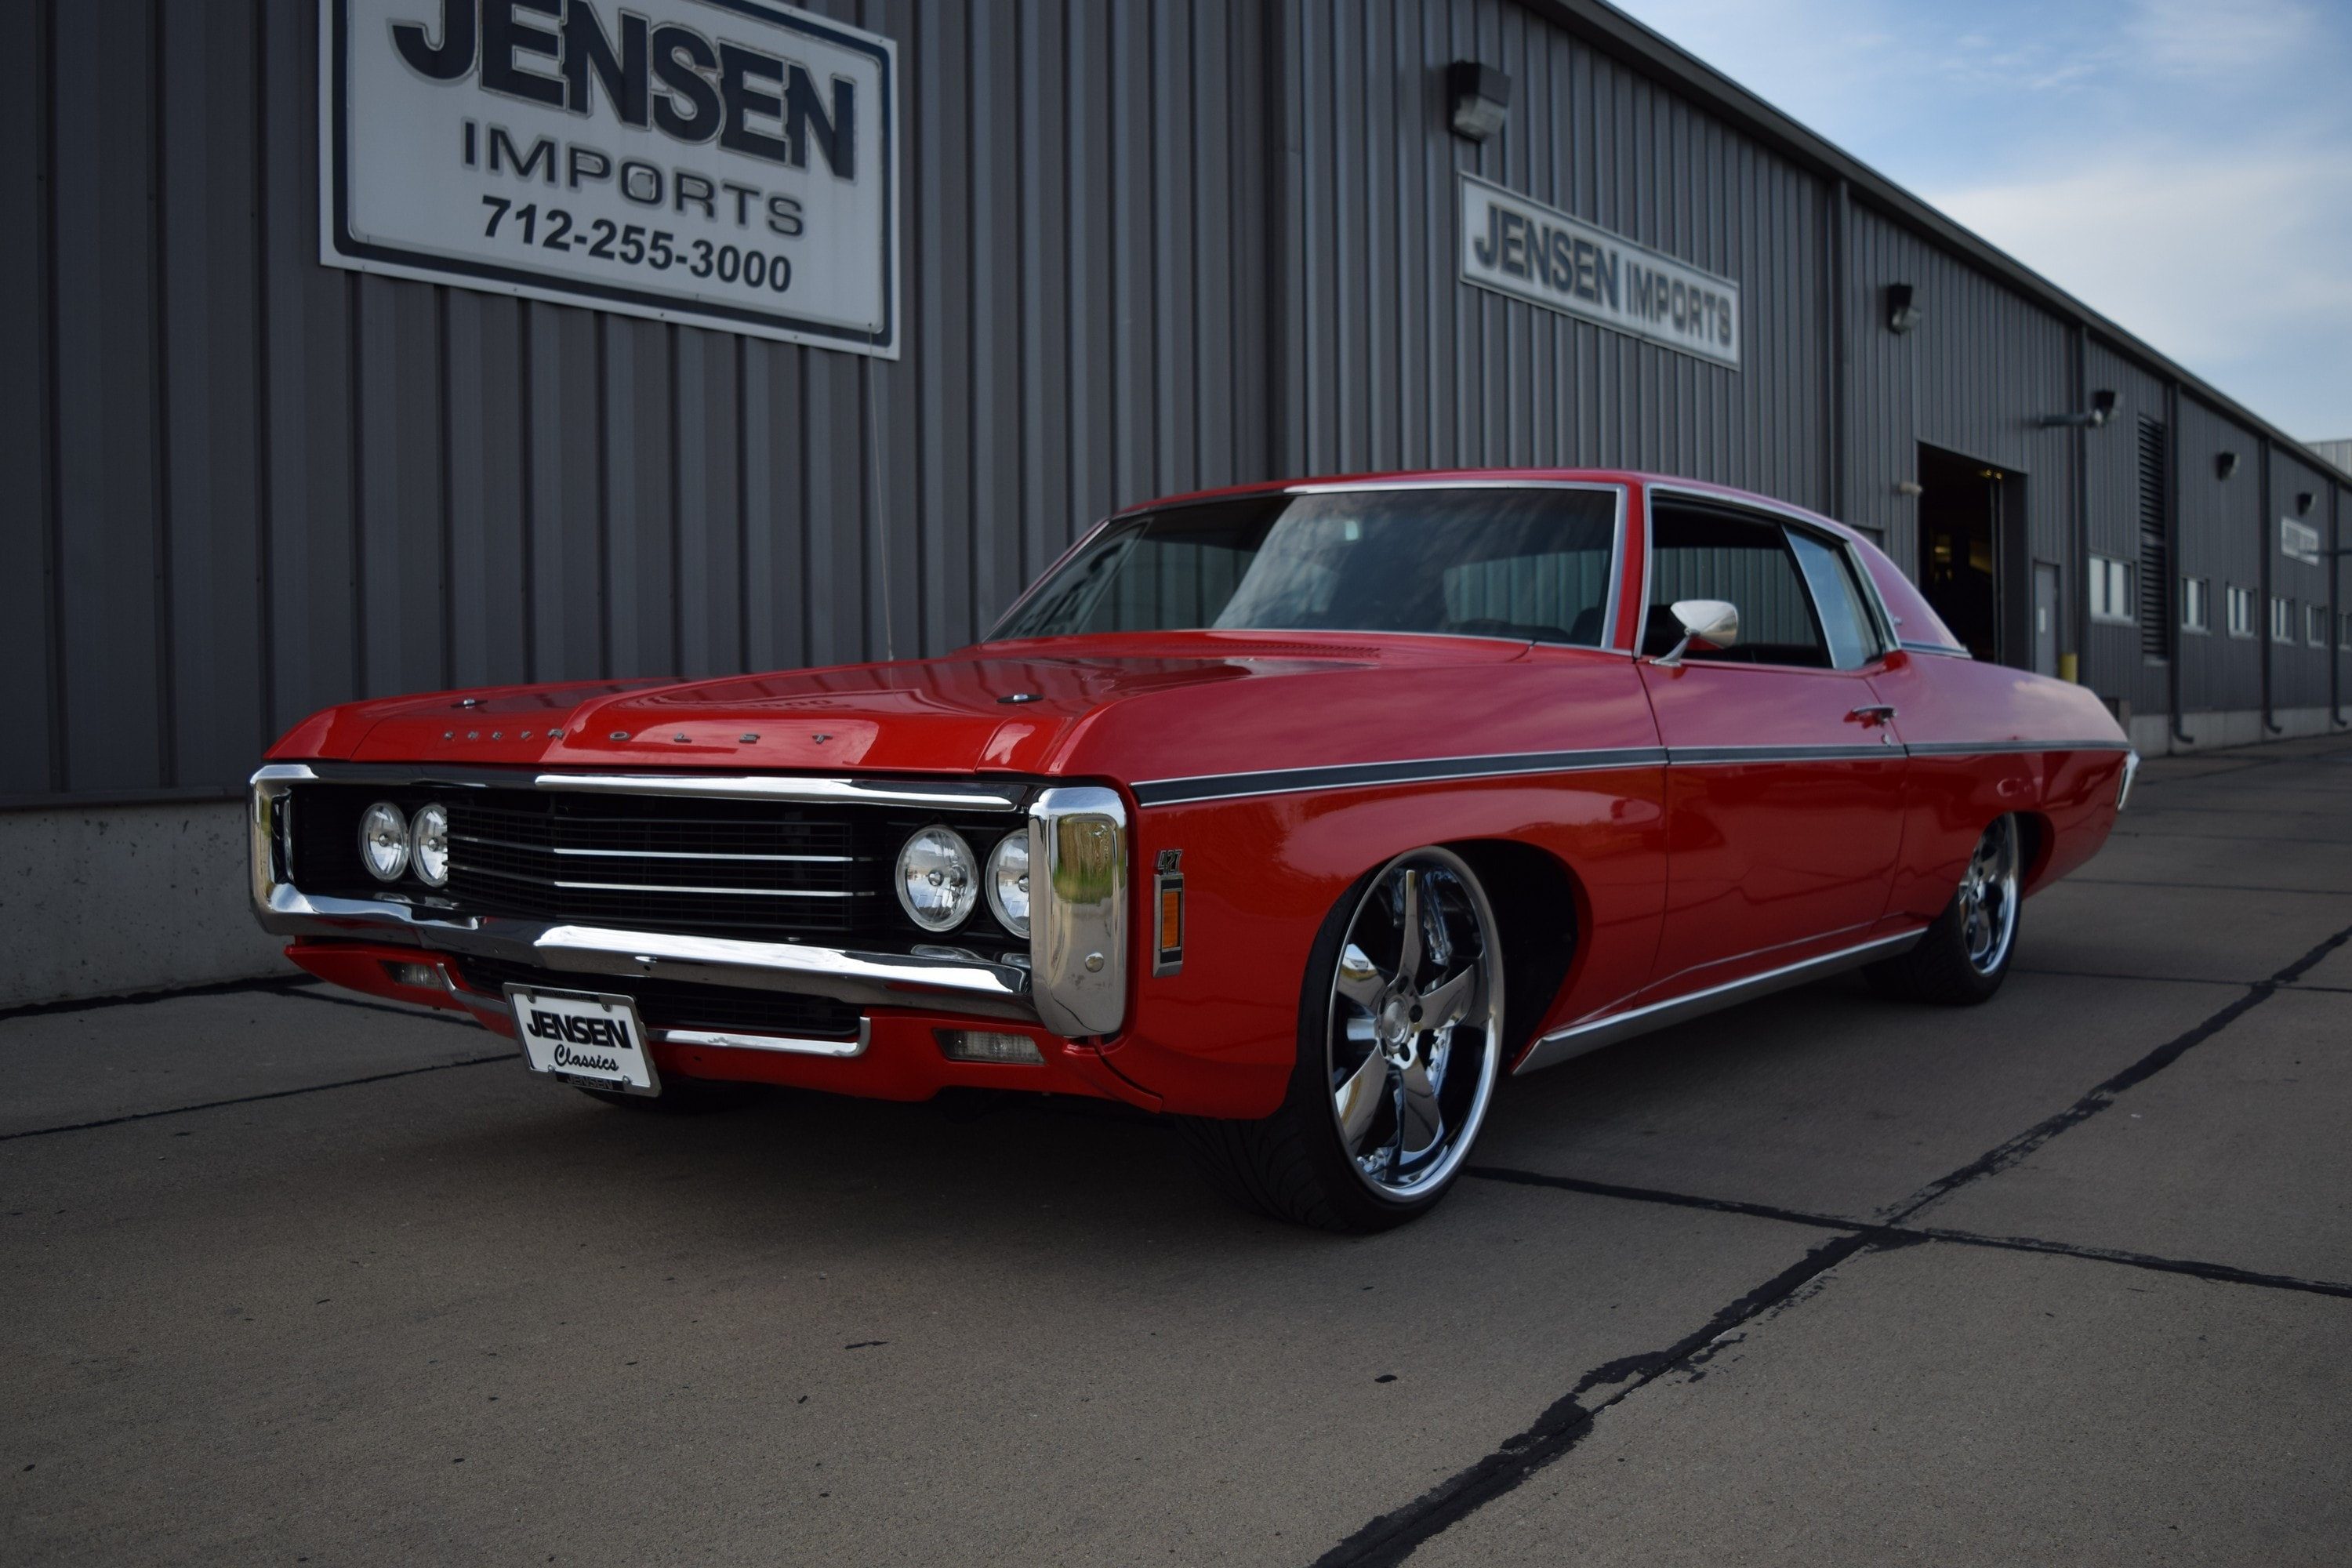 Jensen Dealerships | Classic cars for sale in Sioux City, IA 51106